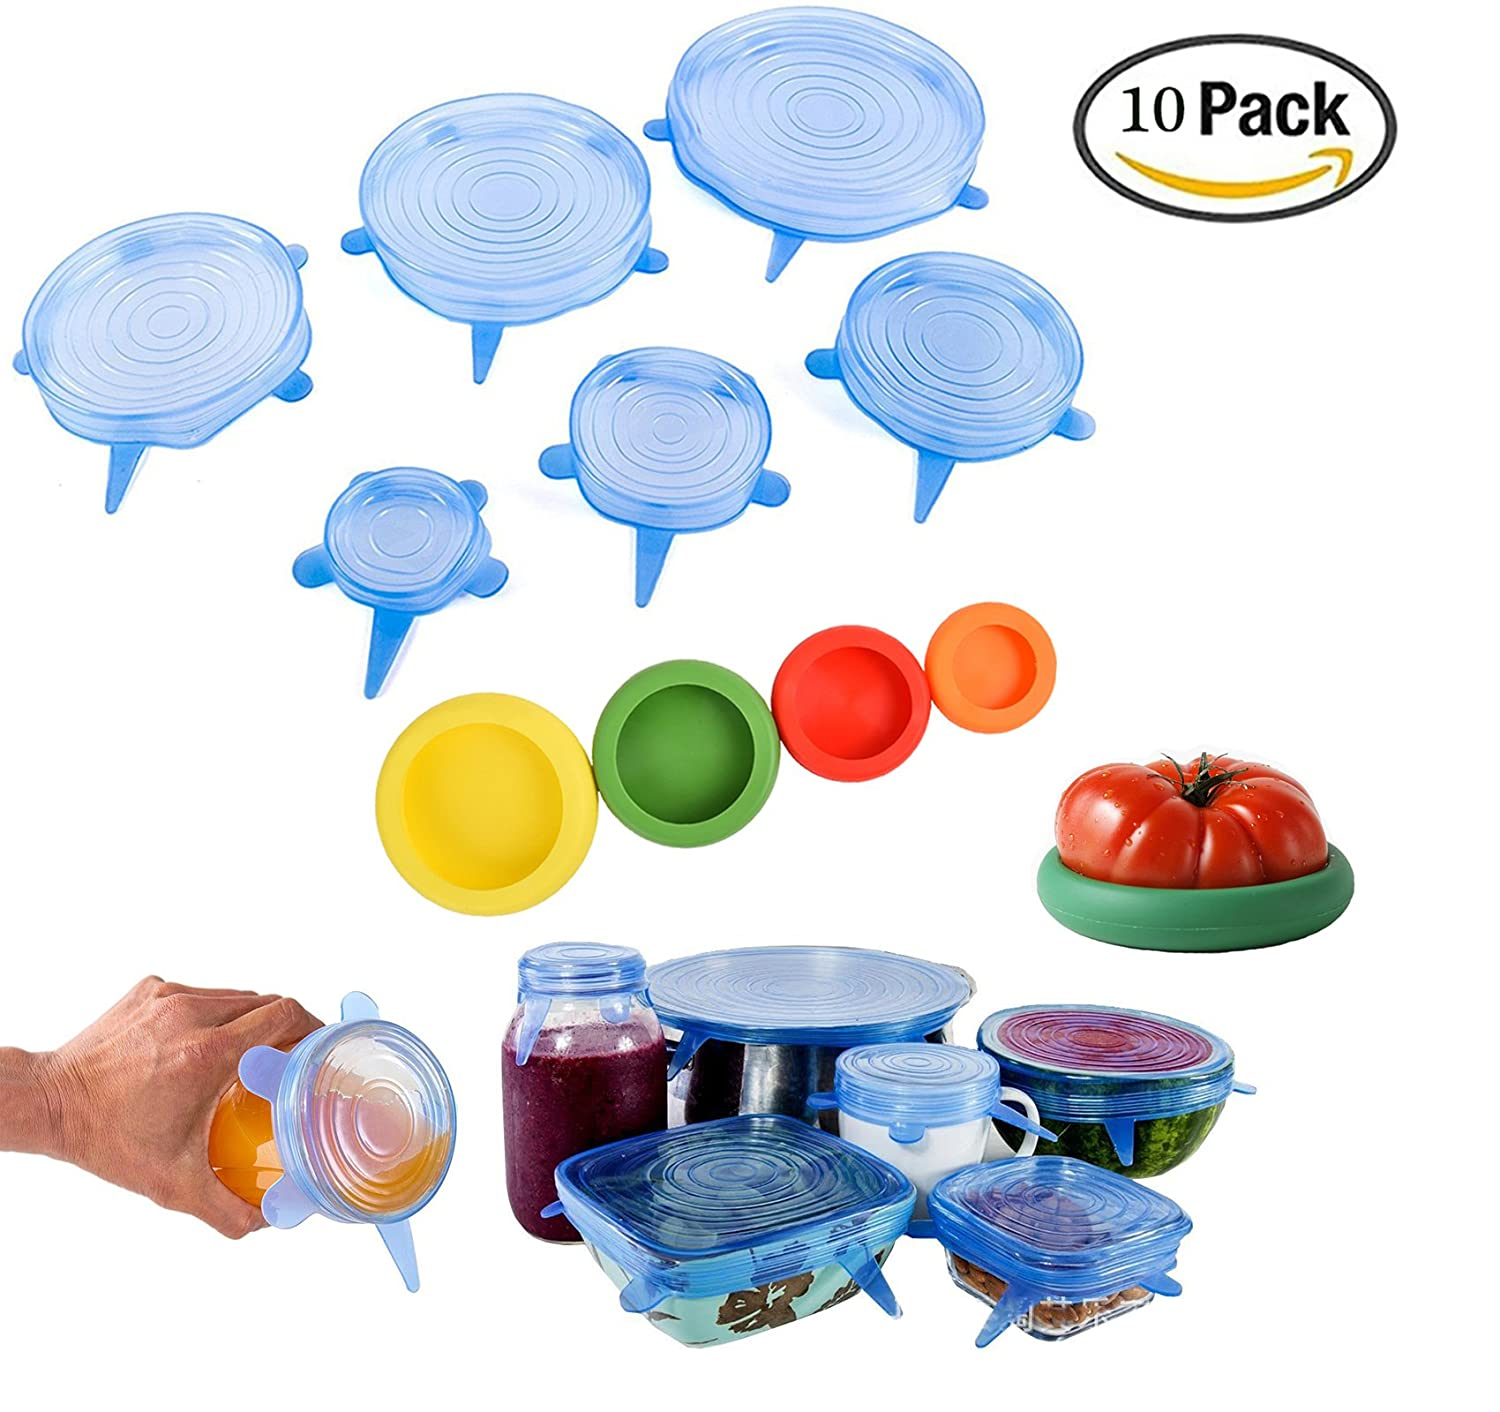 10 PCS Silicone Stretch Lids,Fashionbabies 2 Kinds of Silicone Food Covers for Cups,Vegetables,Fruits,Cans,Bowls